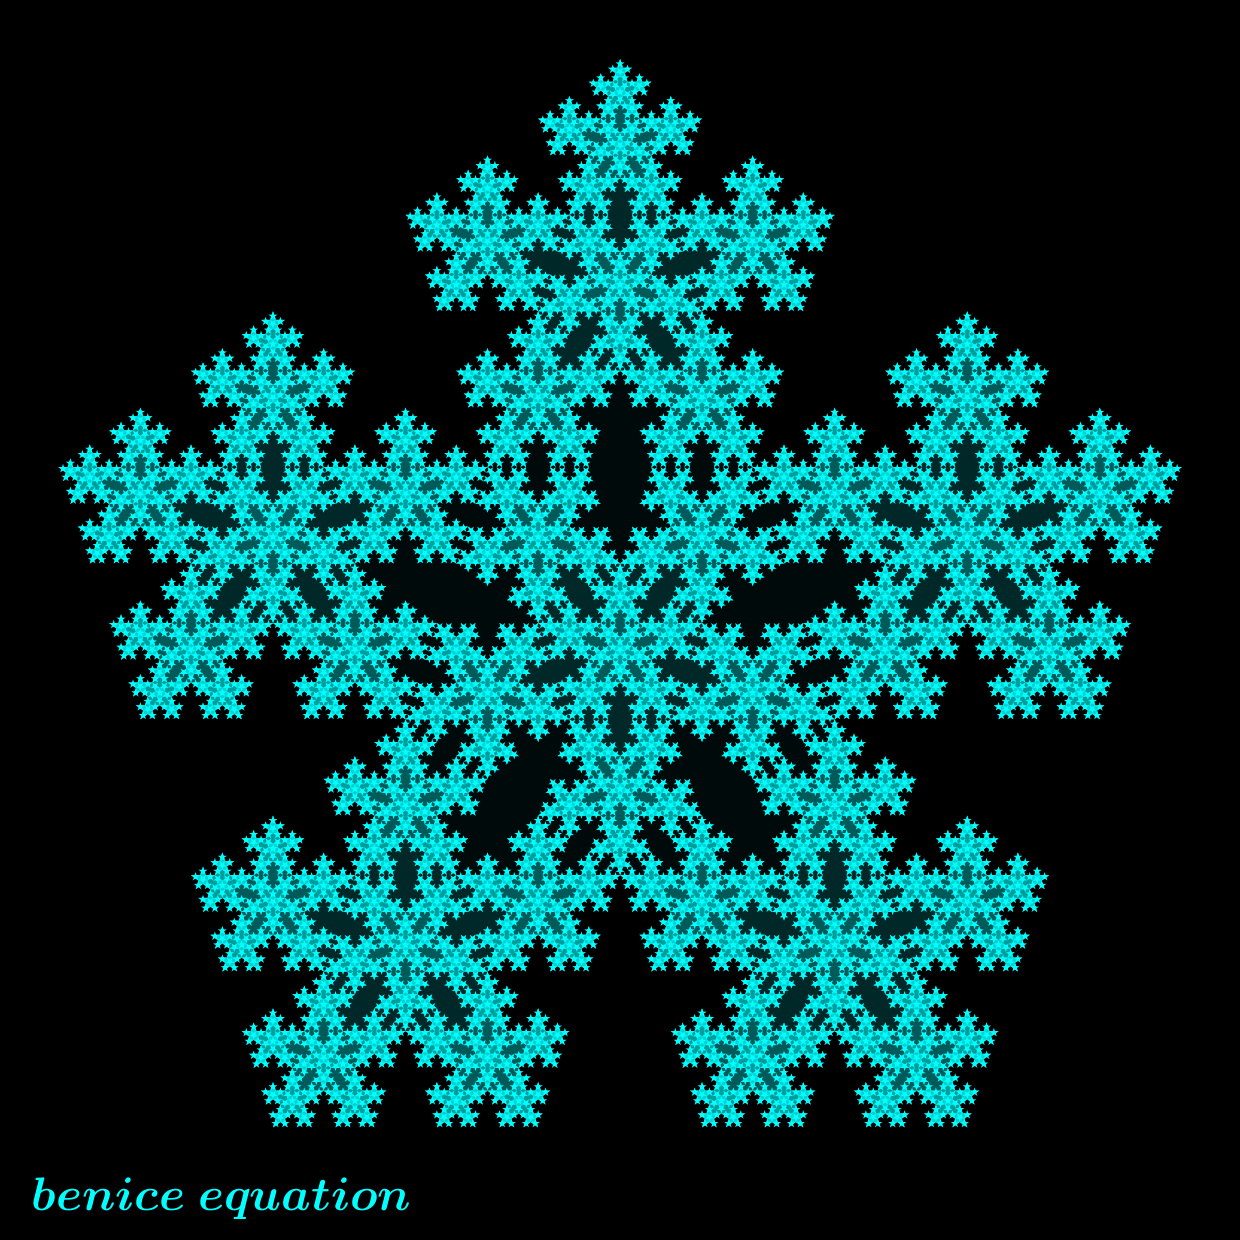 plane geometry symbol with Fractal Star on Perimeter Of Closed Shapes as well Parallel Perpendicular Intersecting Lines as well Stock Illustration D Coordinate Axis Vector Image White Image67829314 furthermore Plane Geometry Symbols further Is This Batman Equation For Real.